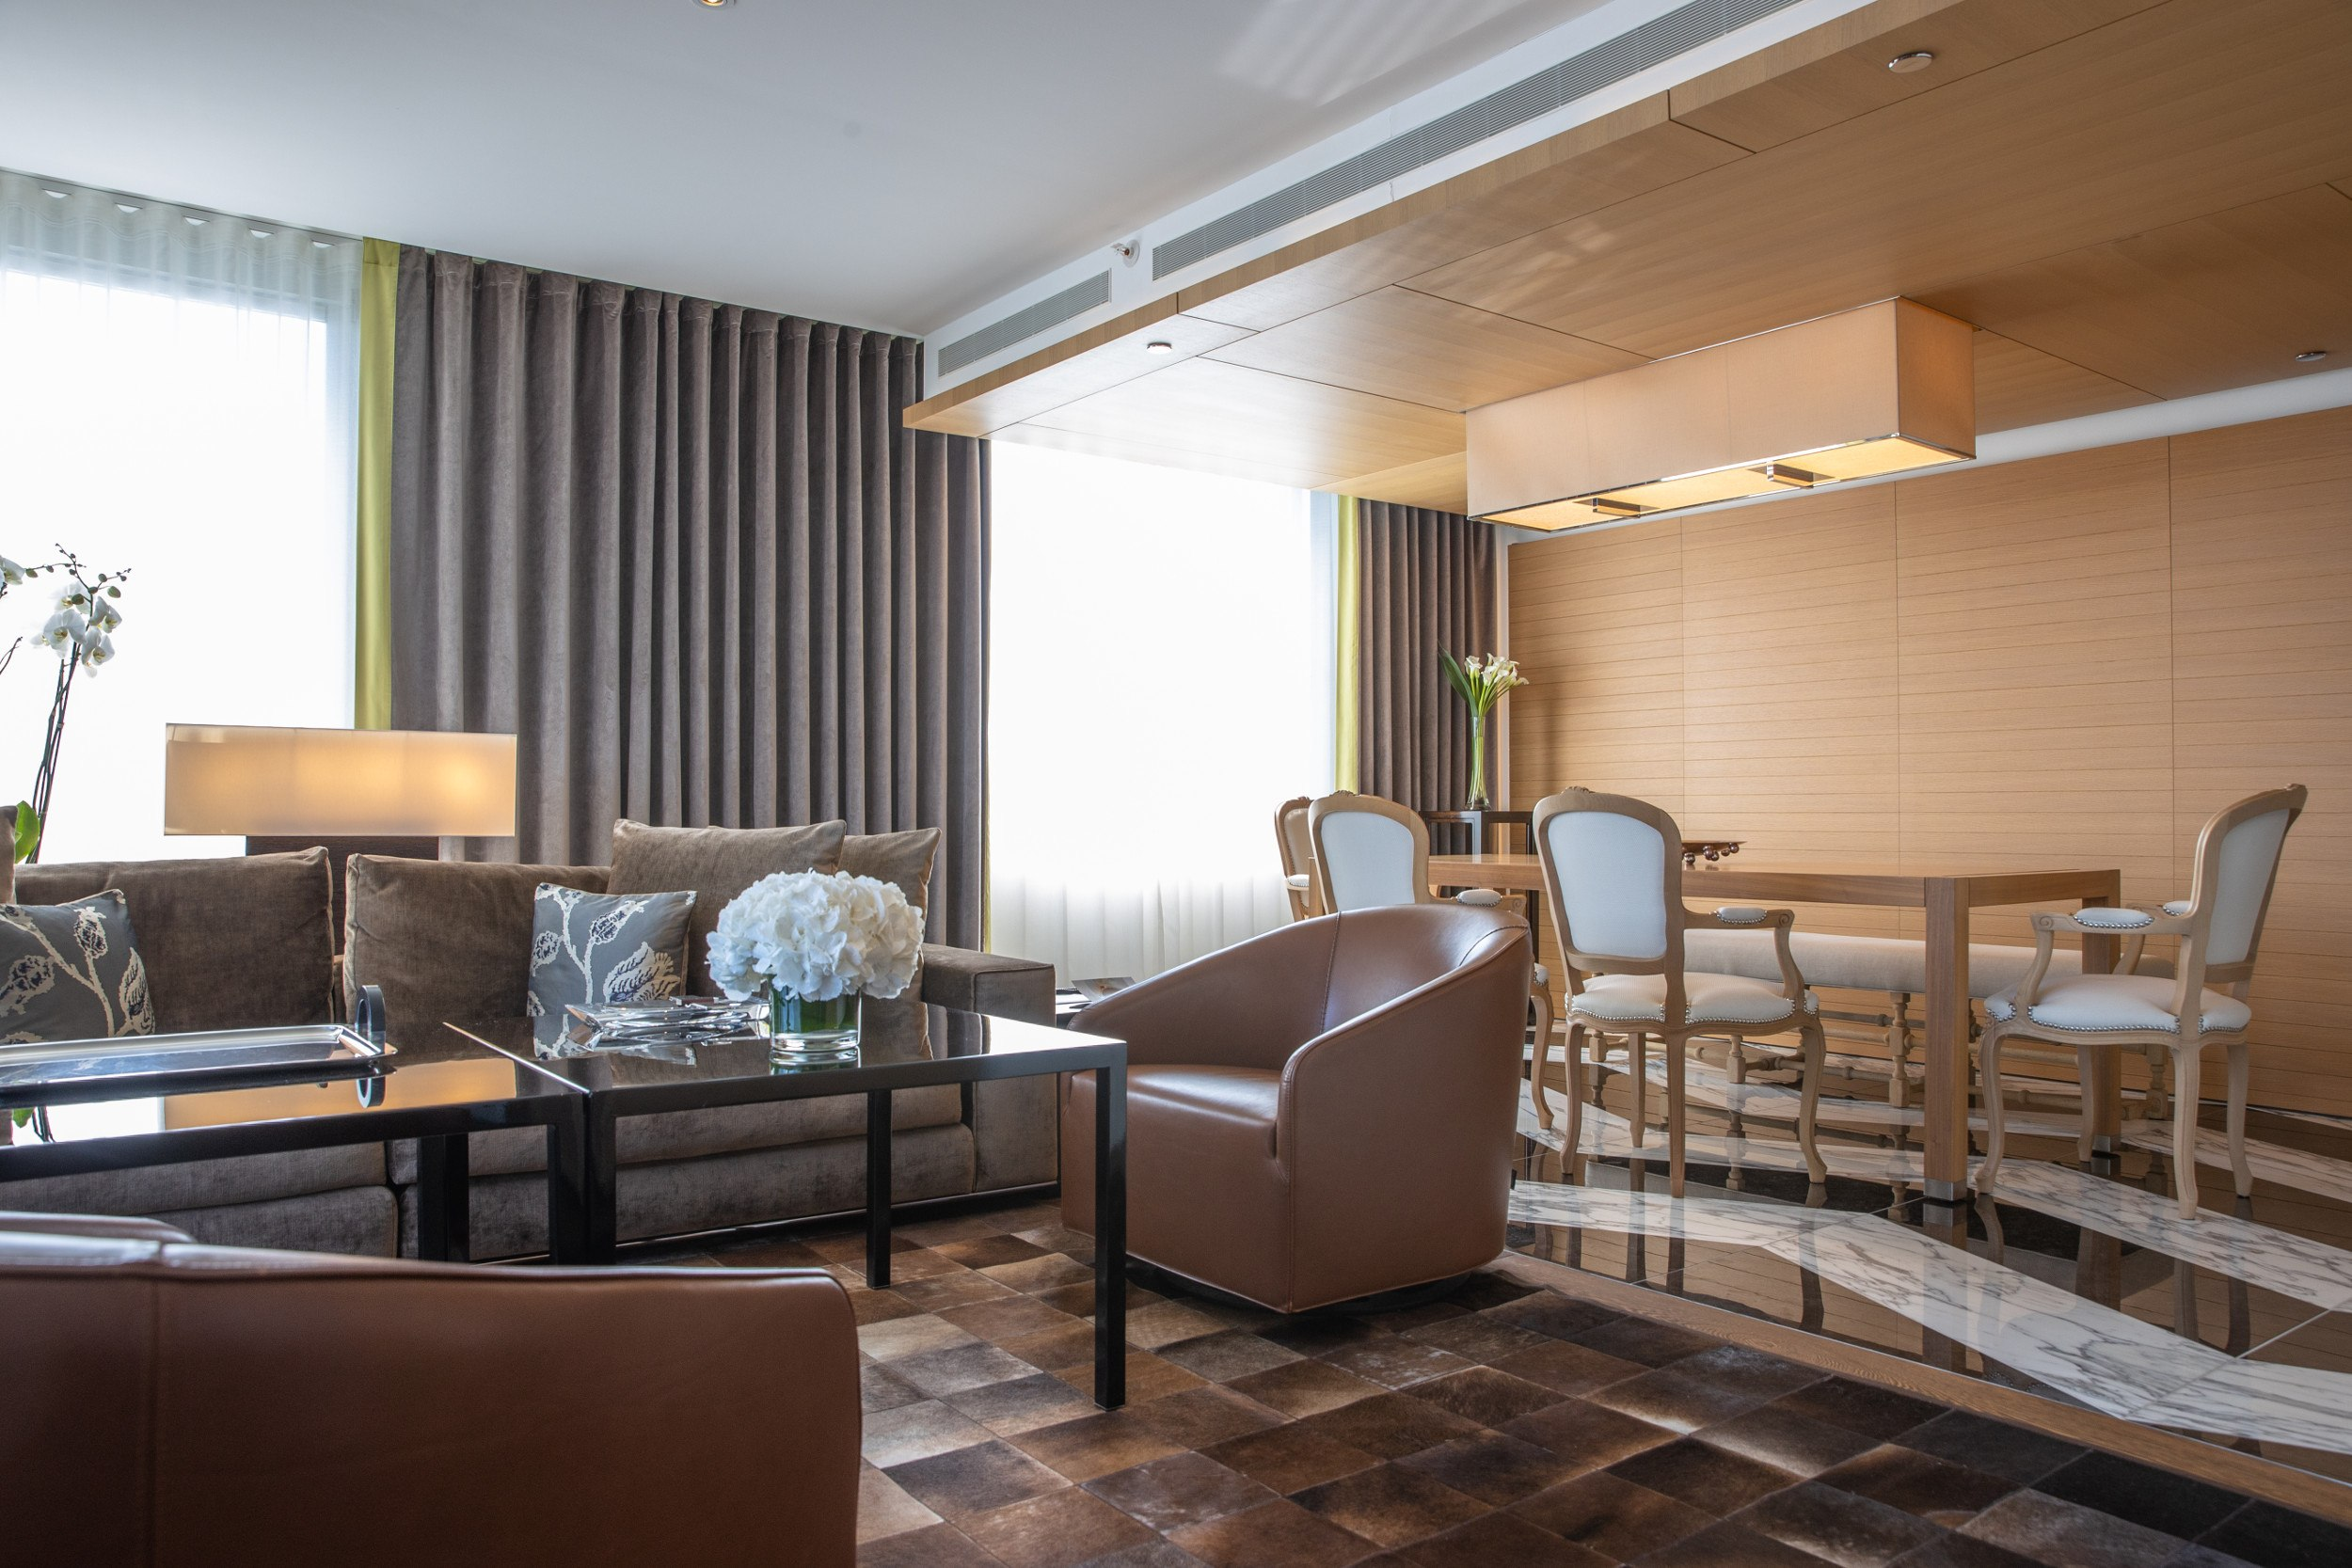 InterContinental-Geneva-Hotel-Executive-lake-view-suite-5